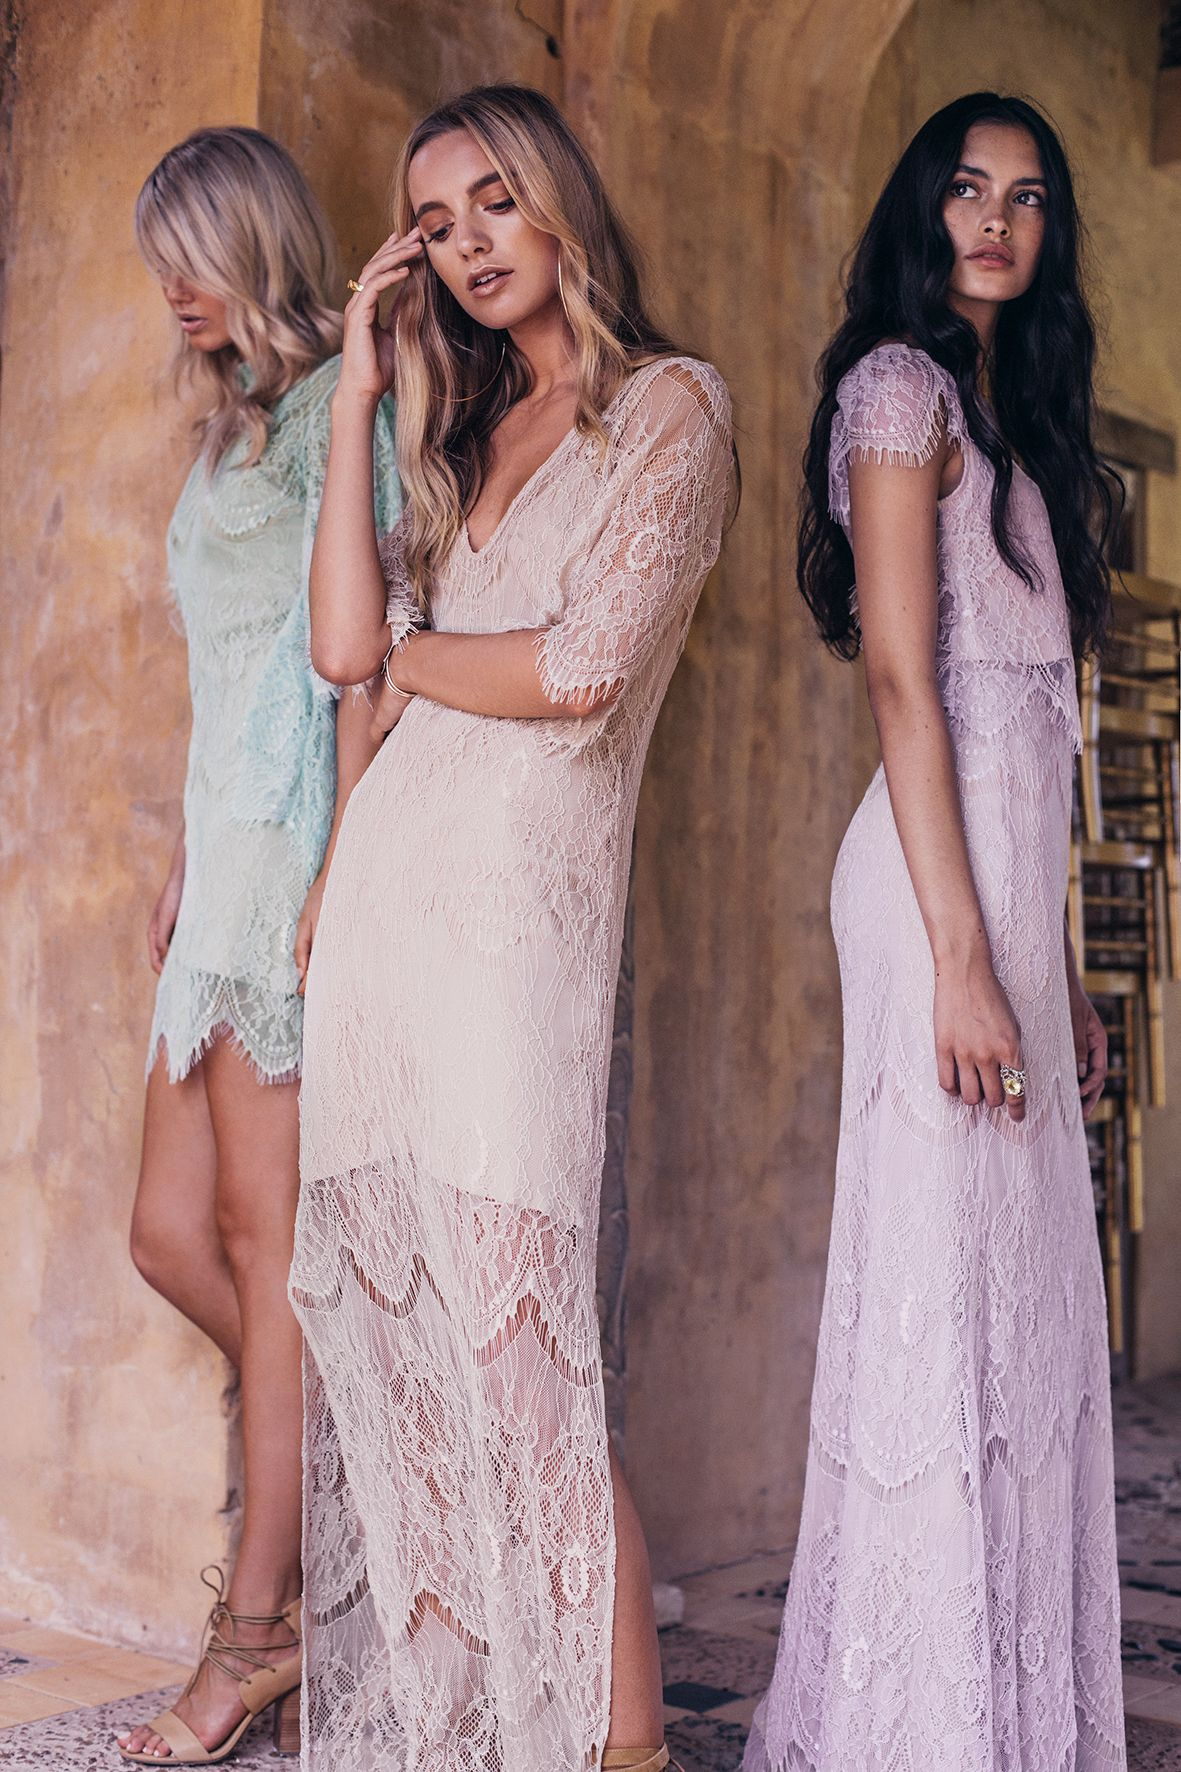 La nouvelle part i graceloveslace my style pinterest the grace loves lace la nouvelle belle campaign introduces the unique bridesmaid in their debut bridesmaid collection ombrellifo Choice Image